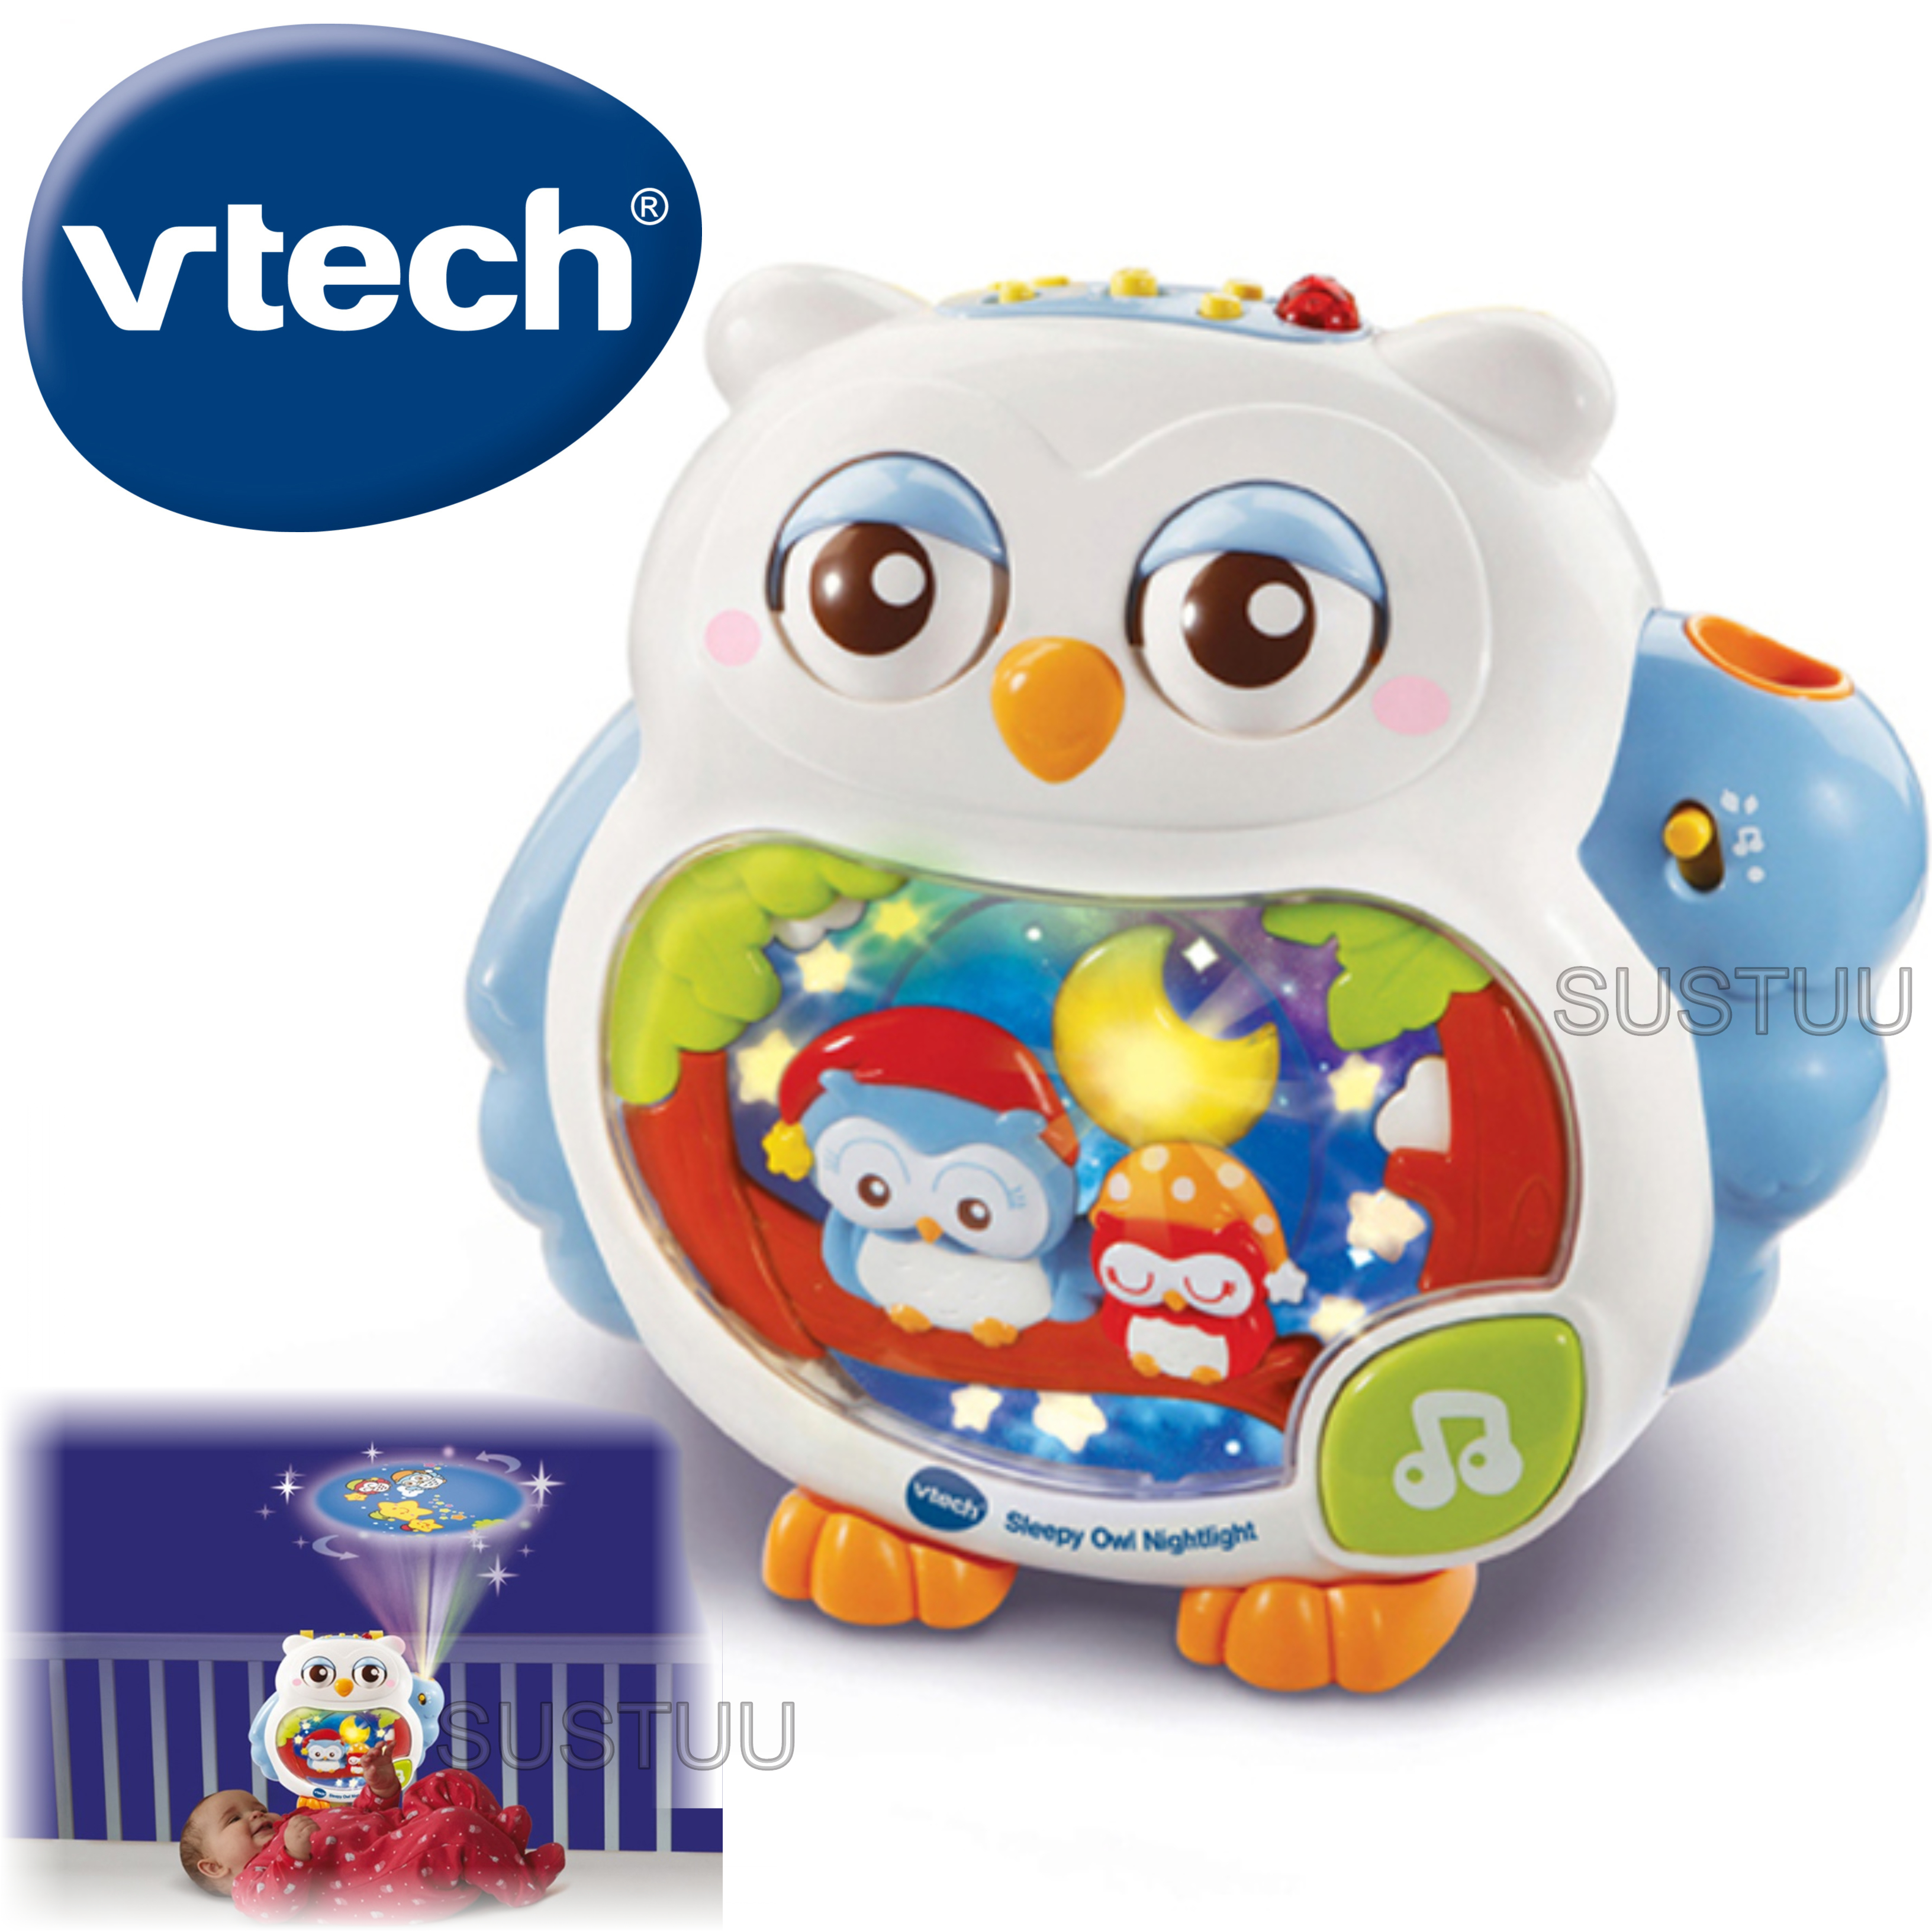 VTech Sleepy Owl Soothing Nightlight For Baby | Lullaby Mode + Remote Control | 0+M